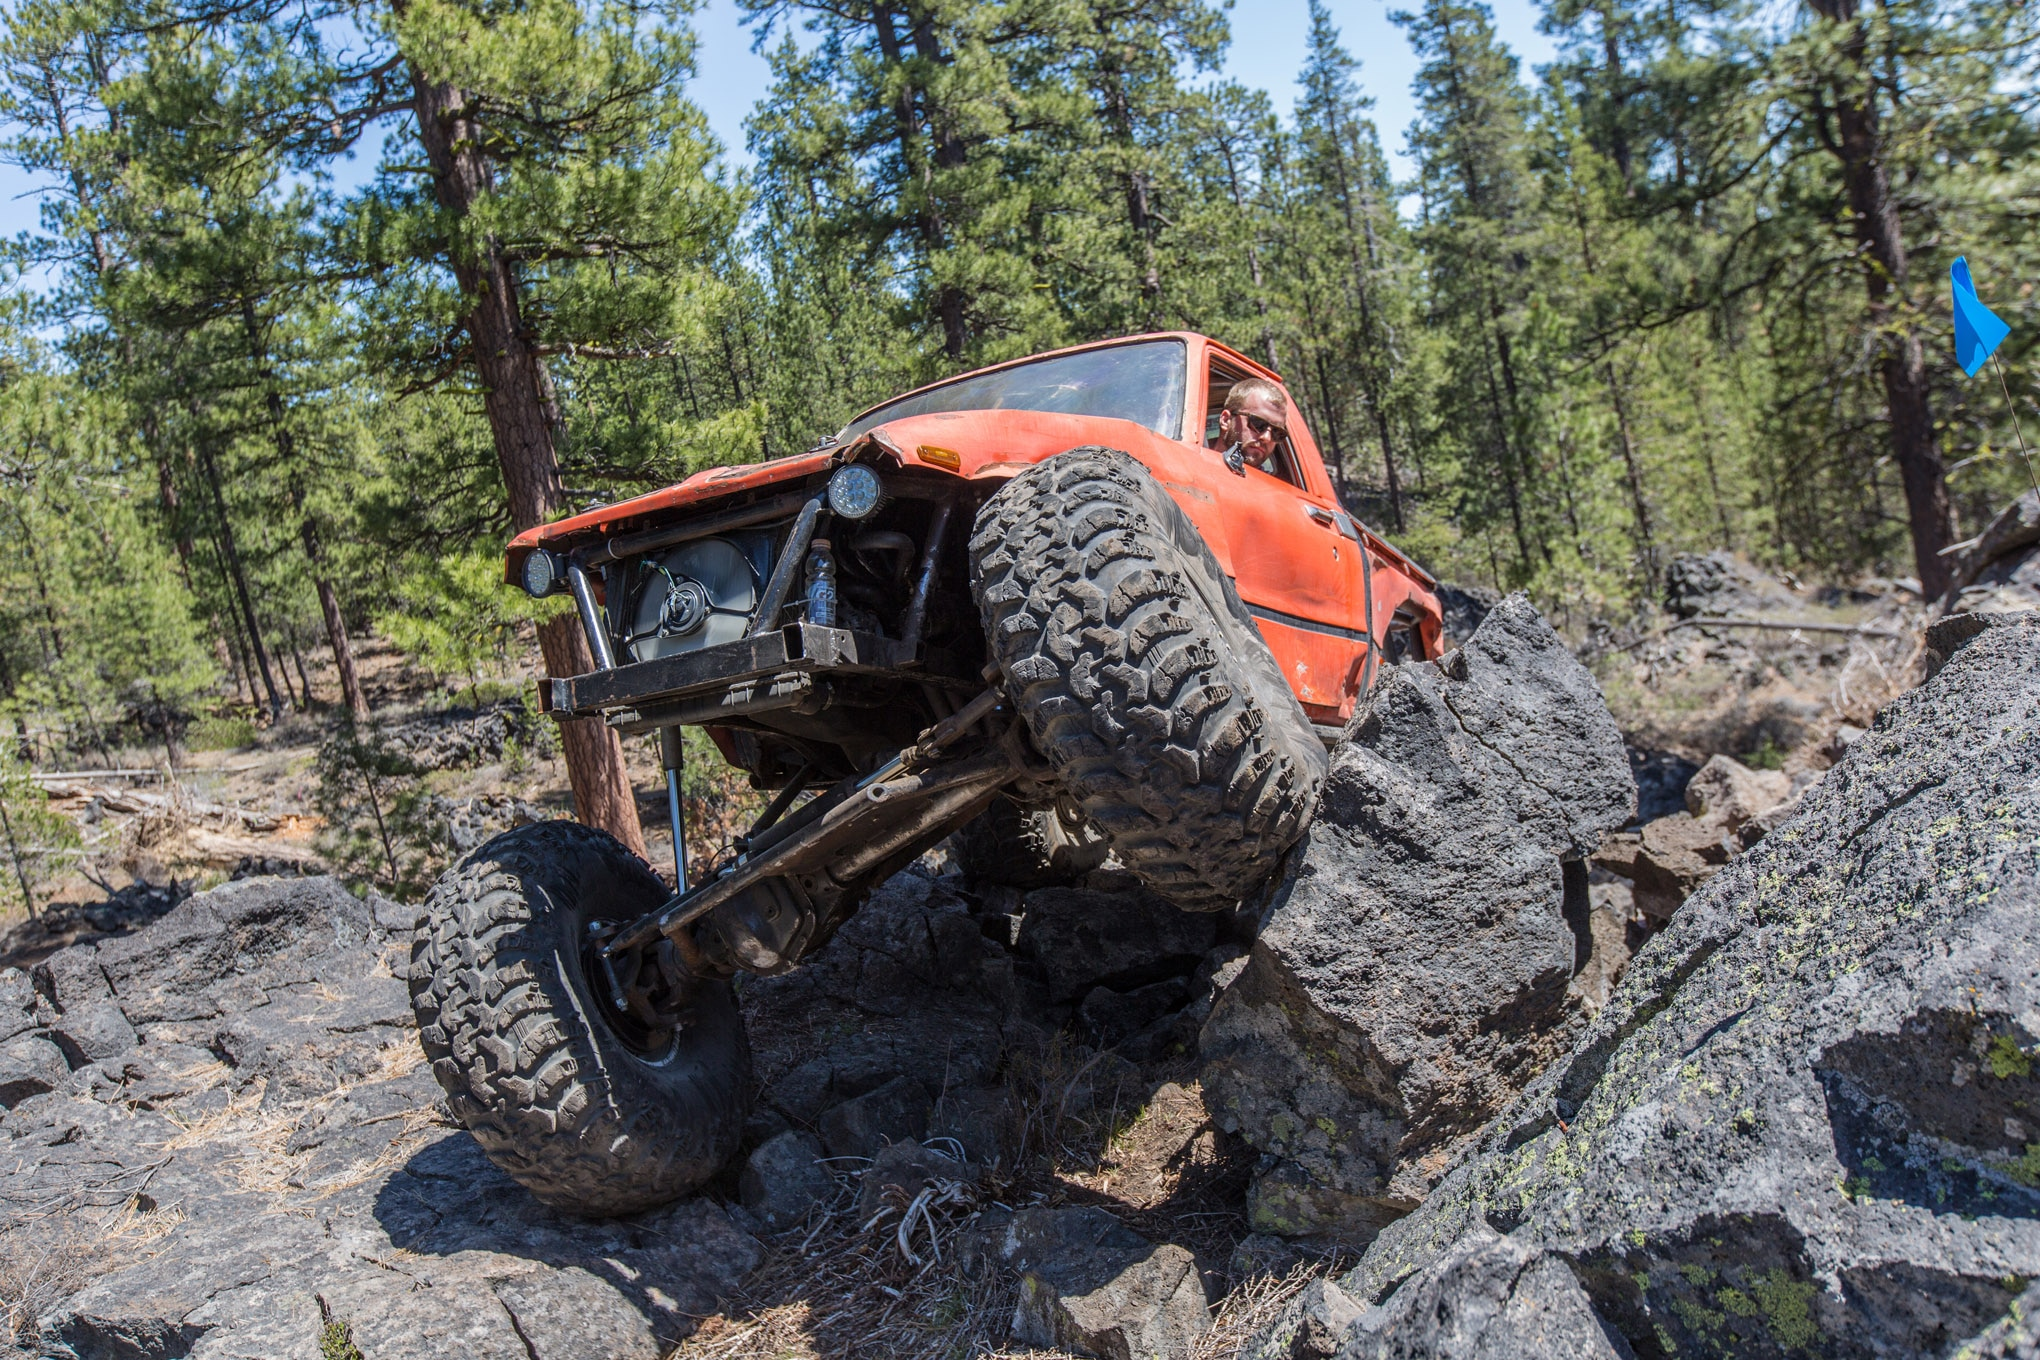 Cameron McGillivray's Toyota pickup looks like an RC car with its huge 42-inch Super Swamper Iroks mounted on 15-inch wheels. The original 22R four-cylinder engine pushes the whole thing down the trail, but dual transfer cases and 1-ton axles have been added to offset the big Swampers.